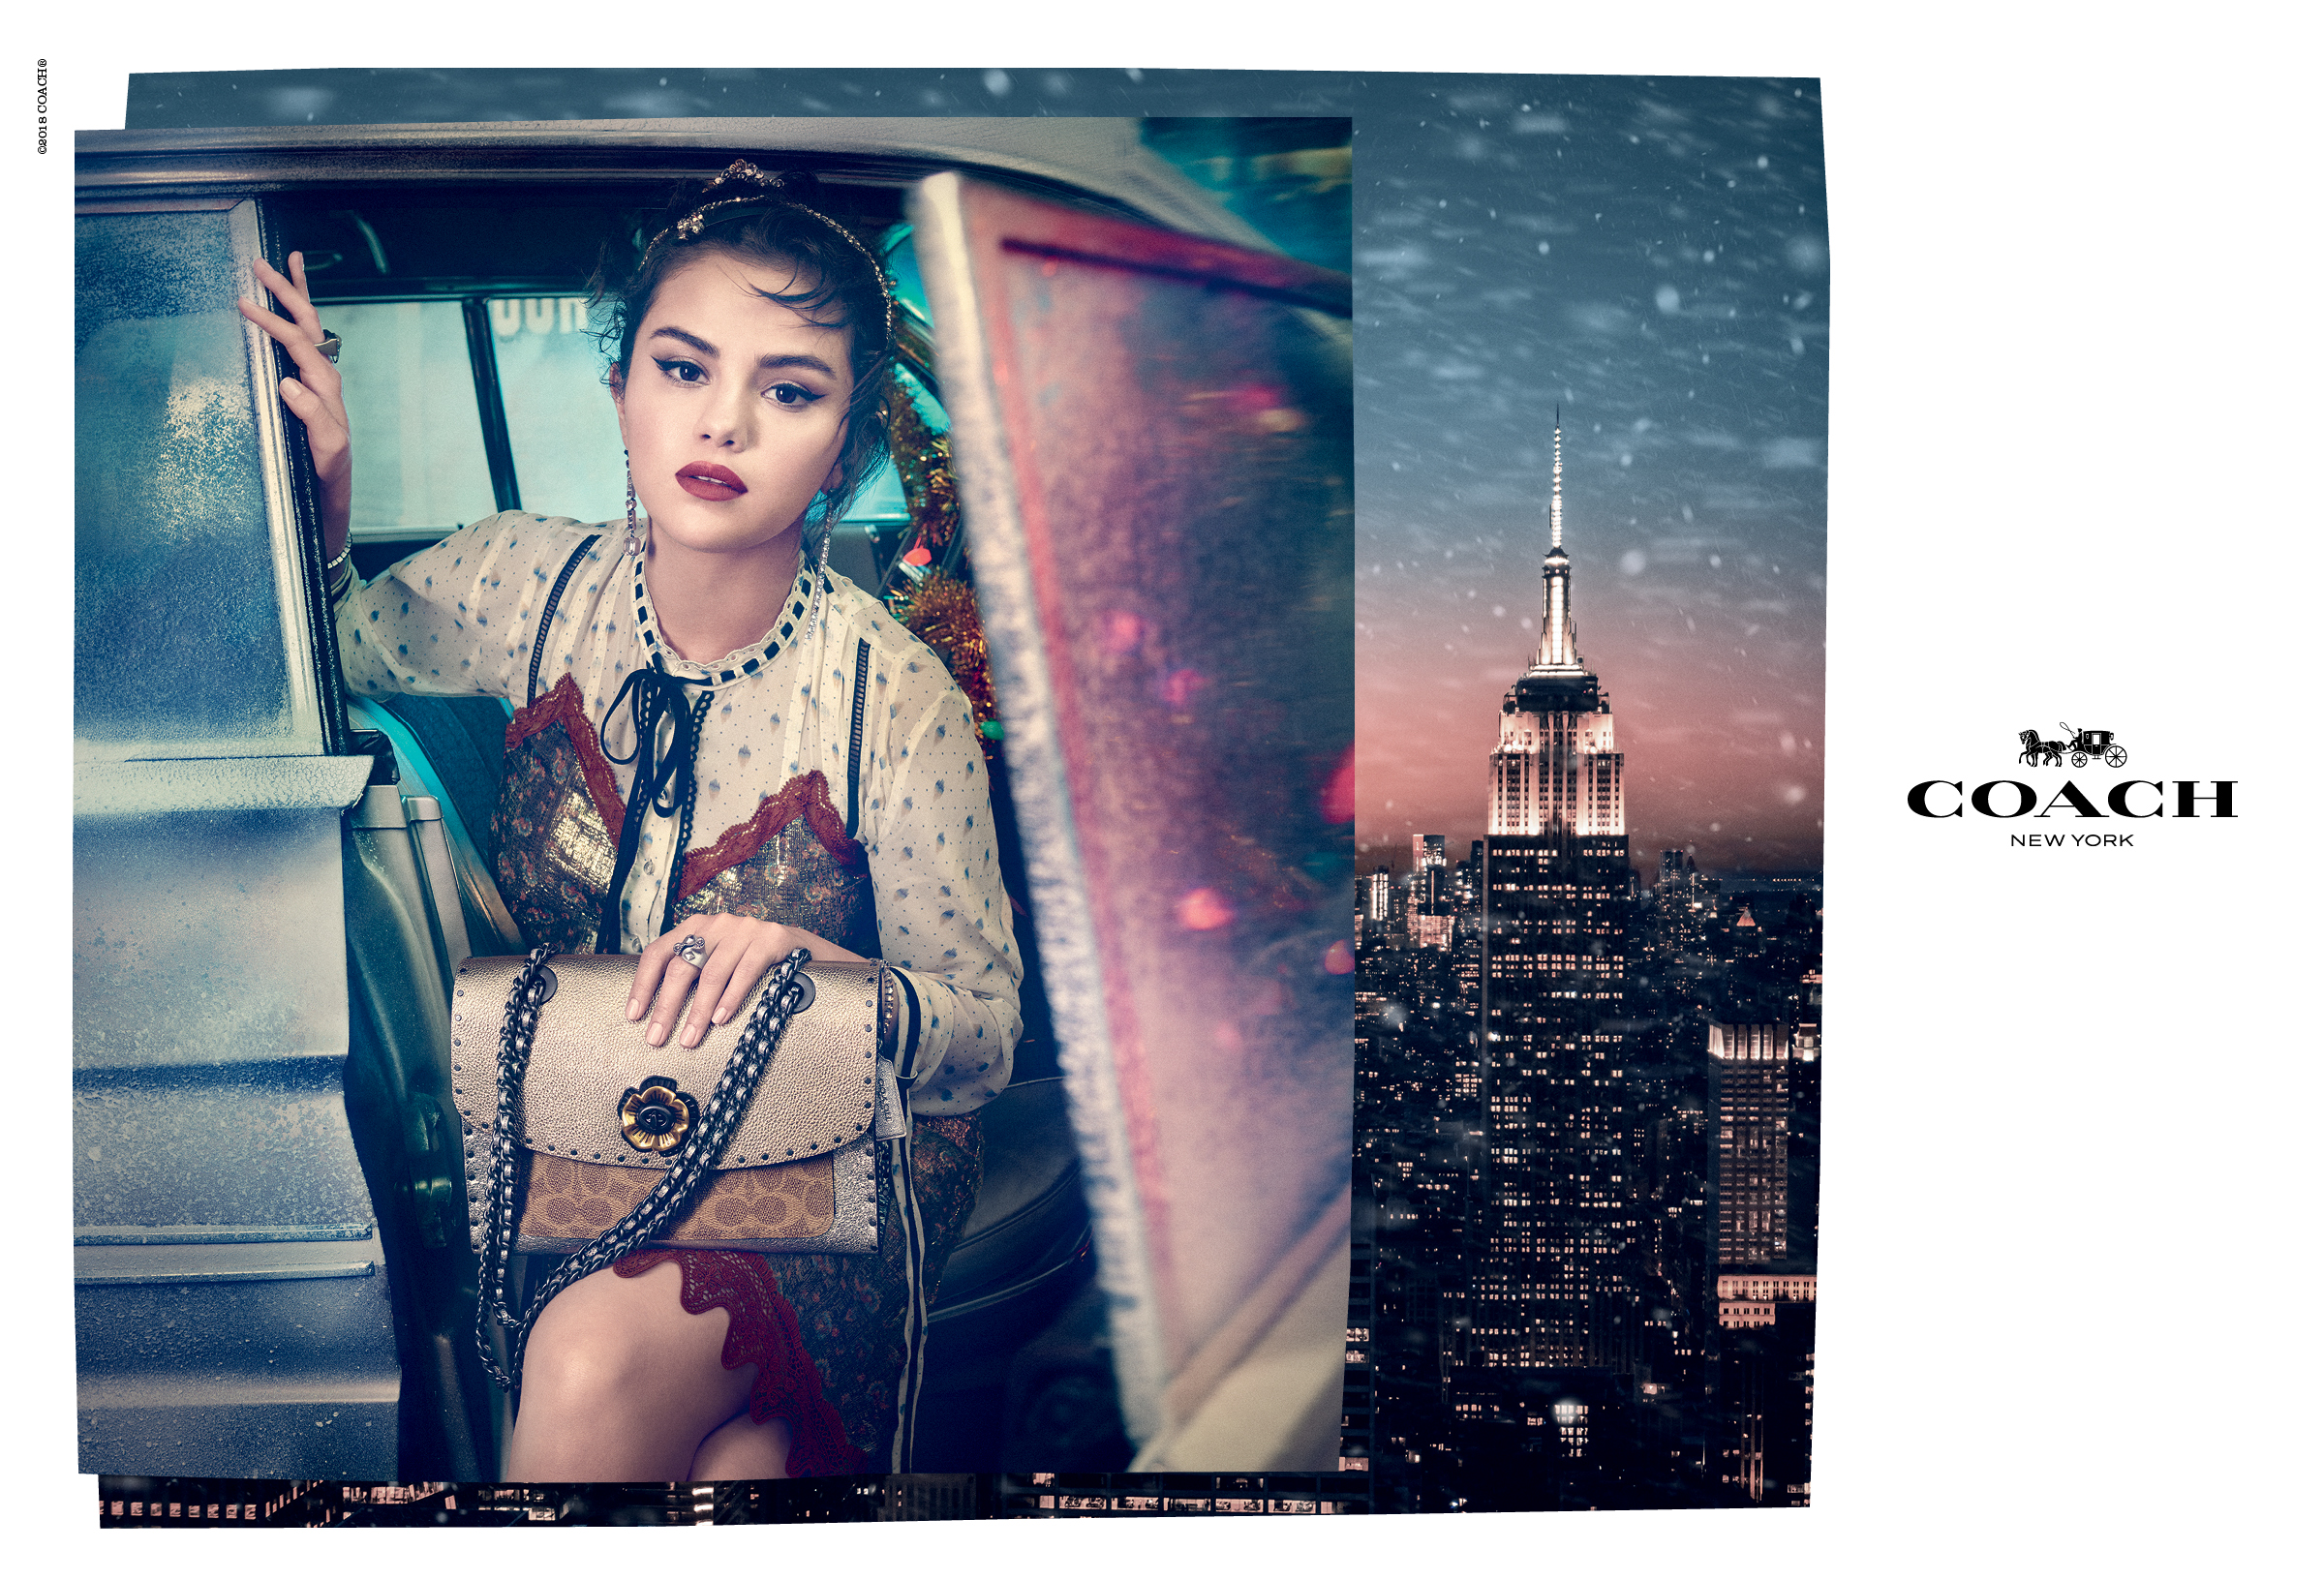 Selena Gomez's Coach Holiday Campaign Will Have You Reaching for the Tinsel and Peppermint Schnapps